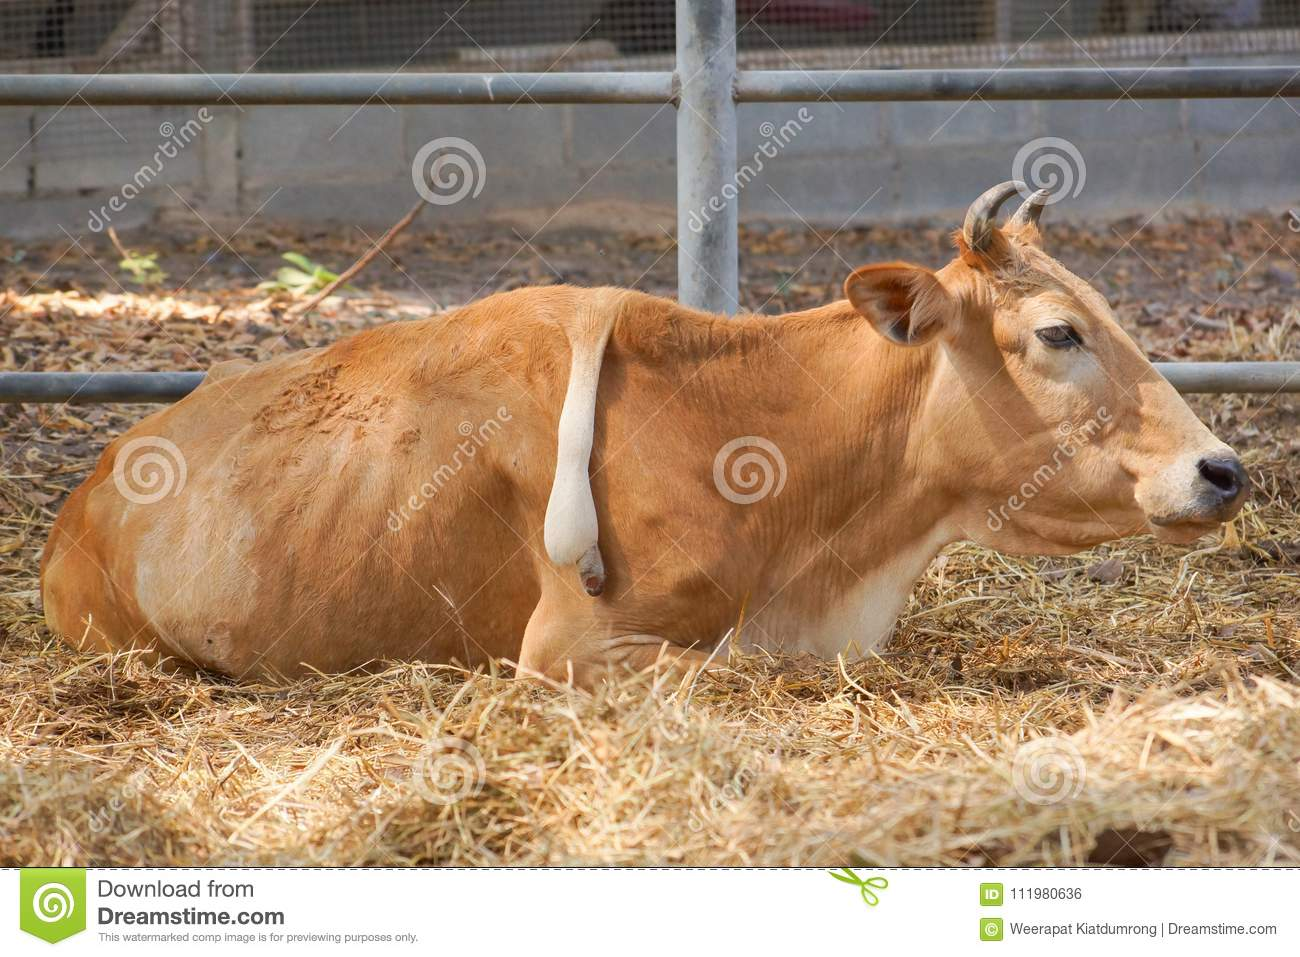 A Cow With Extra Leg On Its Back Stock Photo - Image of ...